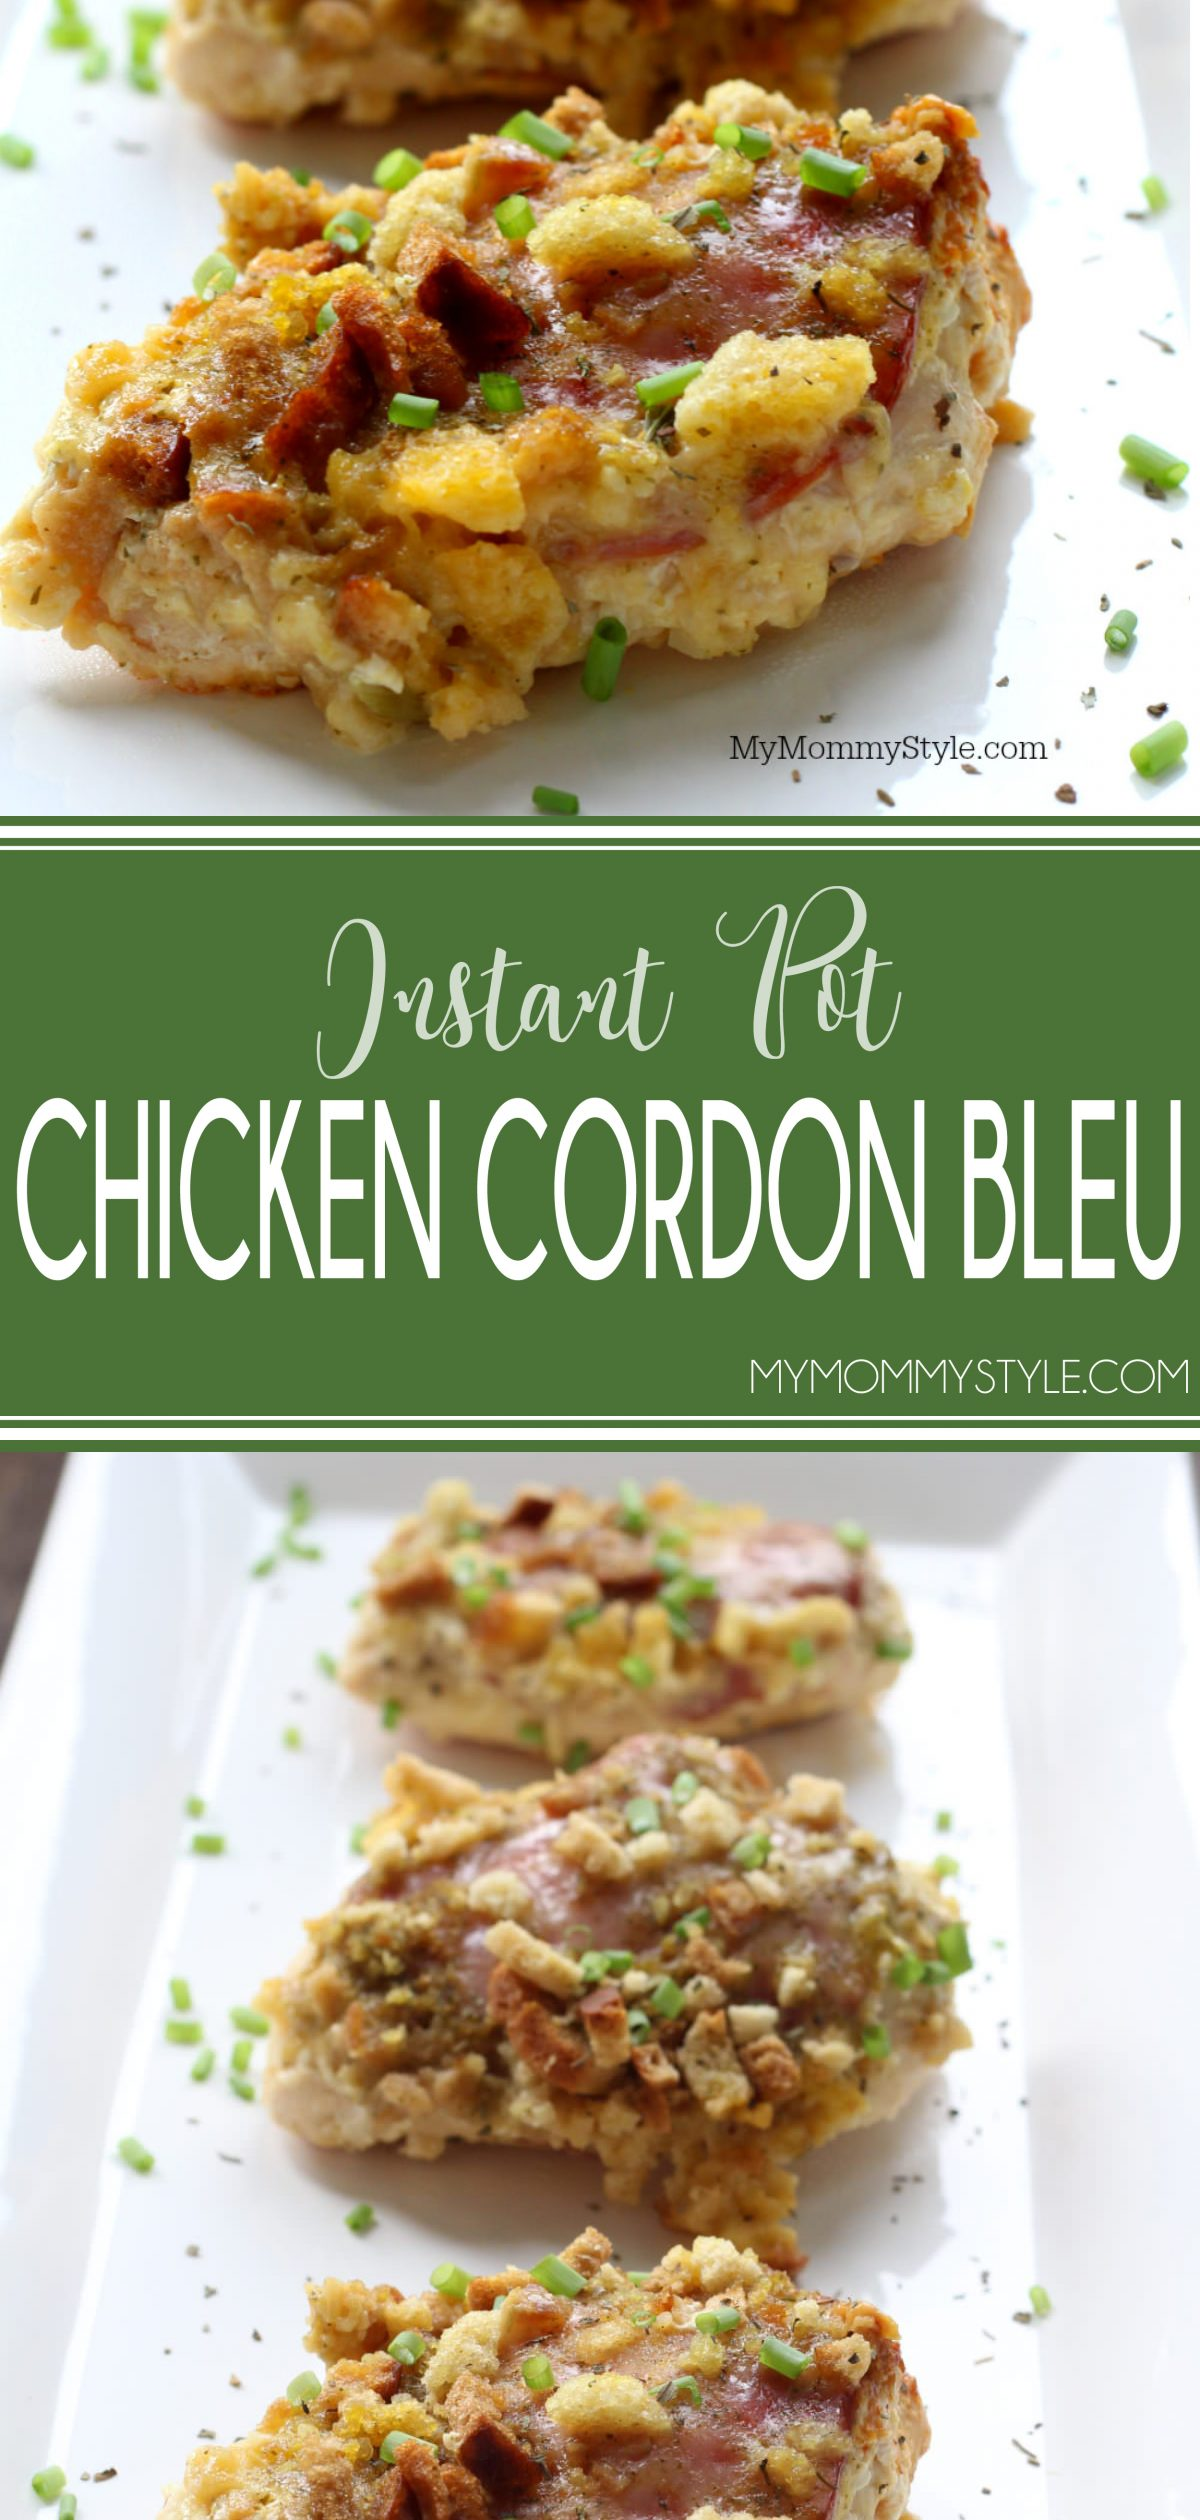 This Instant Pot Chicken Cordon Bleu marries the same traditional flavors of Cordon Blue, but takes out the hassle of pounding the meal, rolling up the layers, and cuts out tons of time. via @mymommystyle